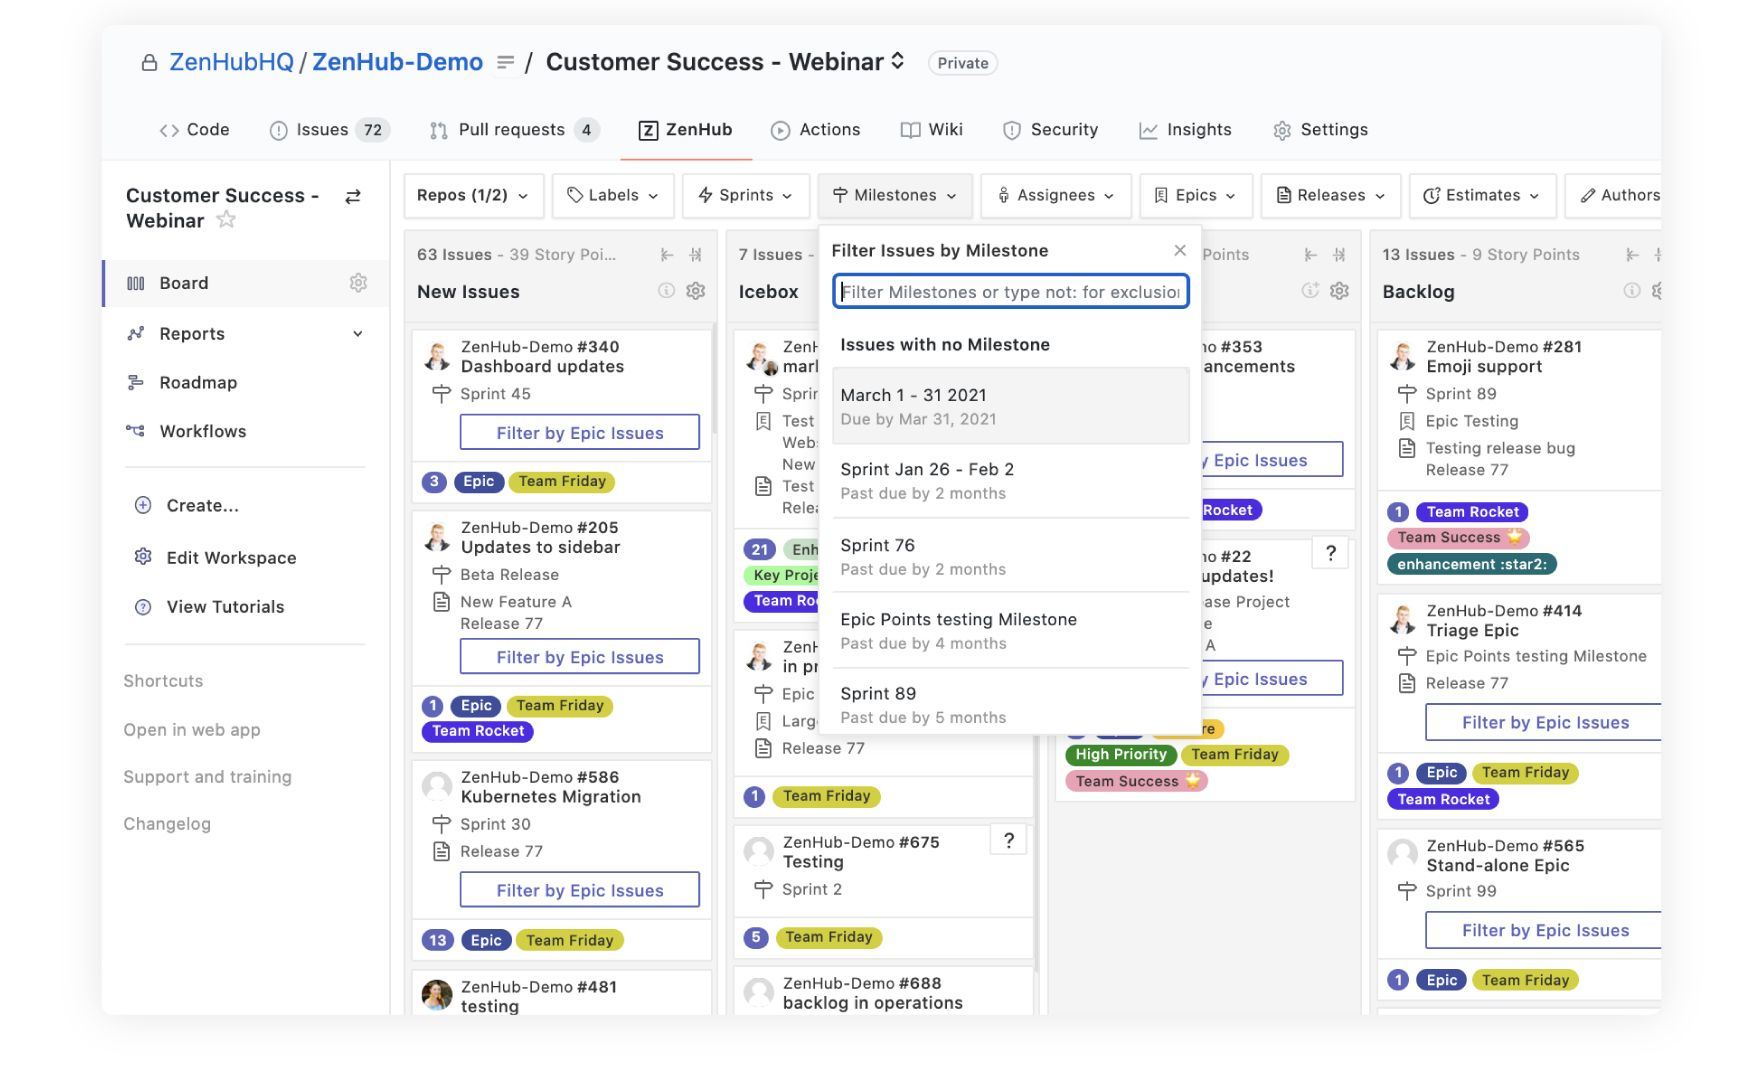 filtering issues by milestone on a customer success Kanban board